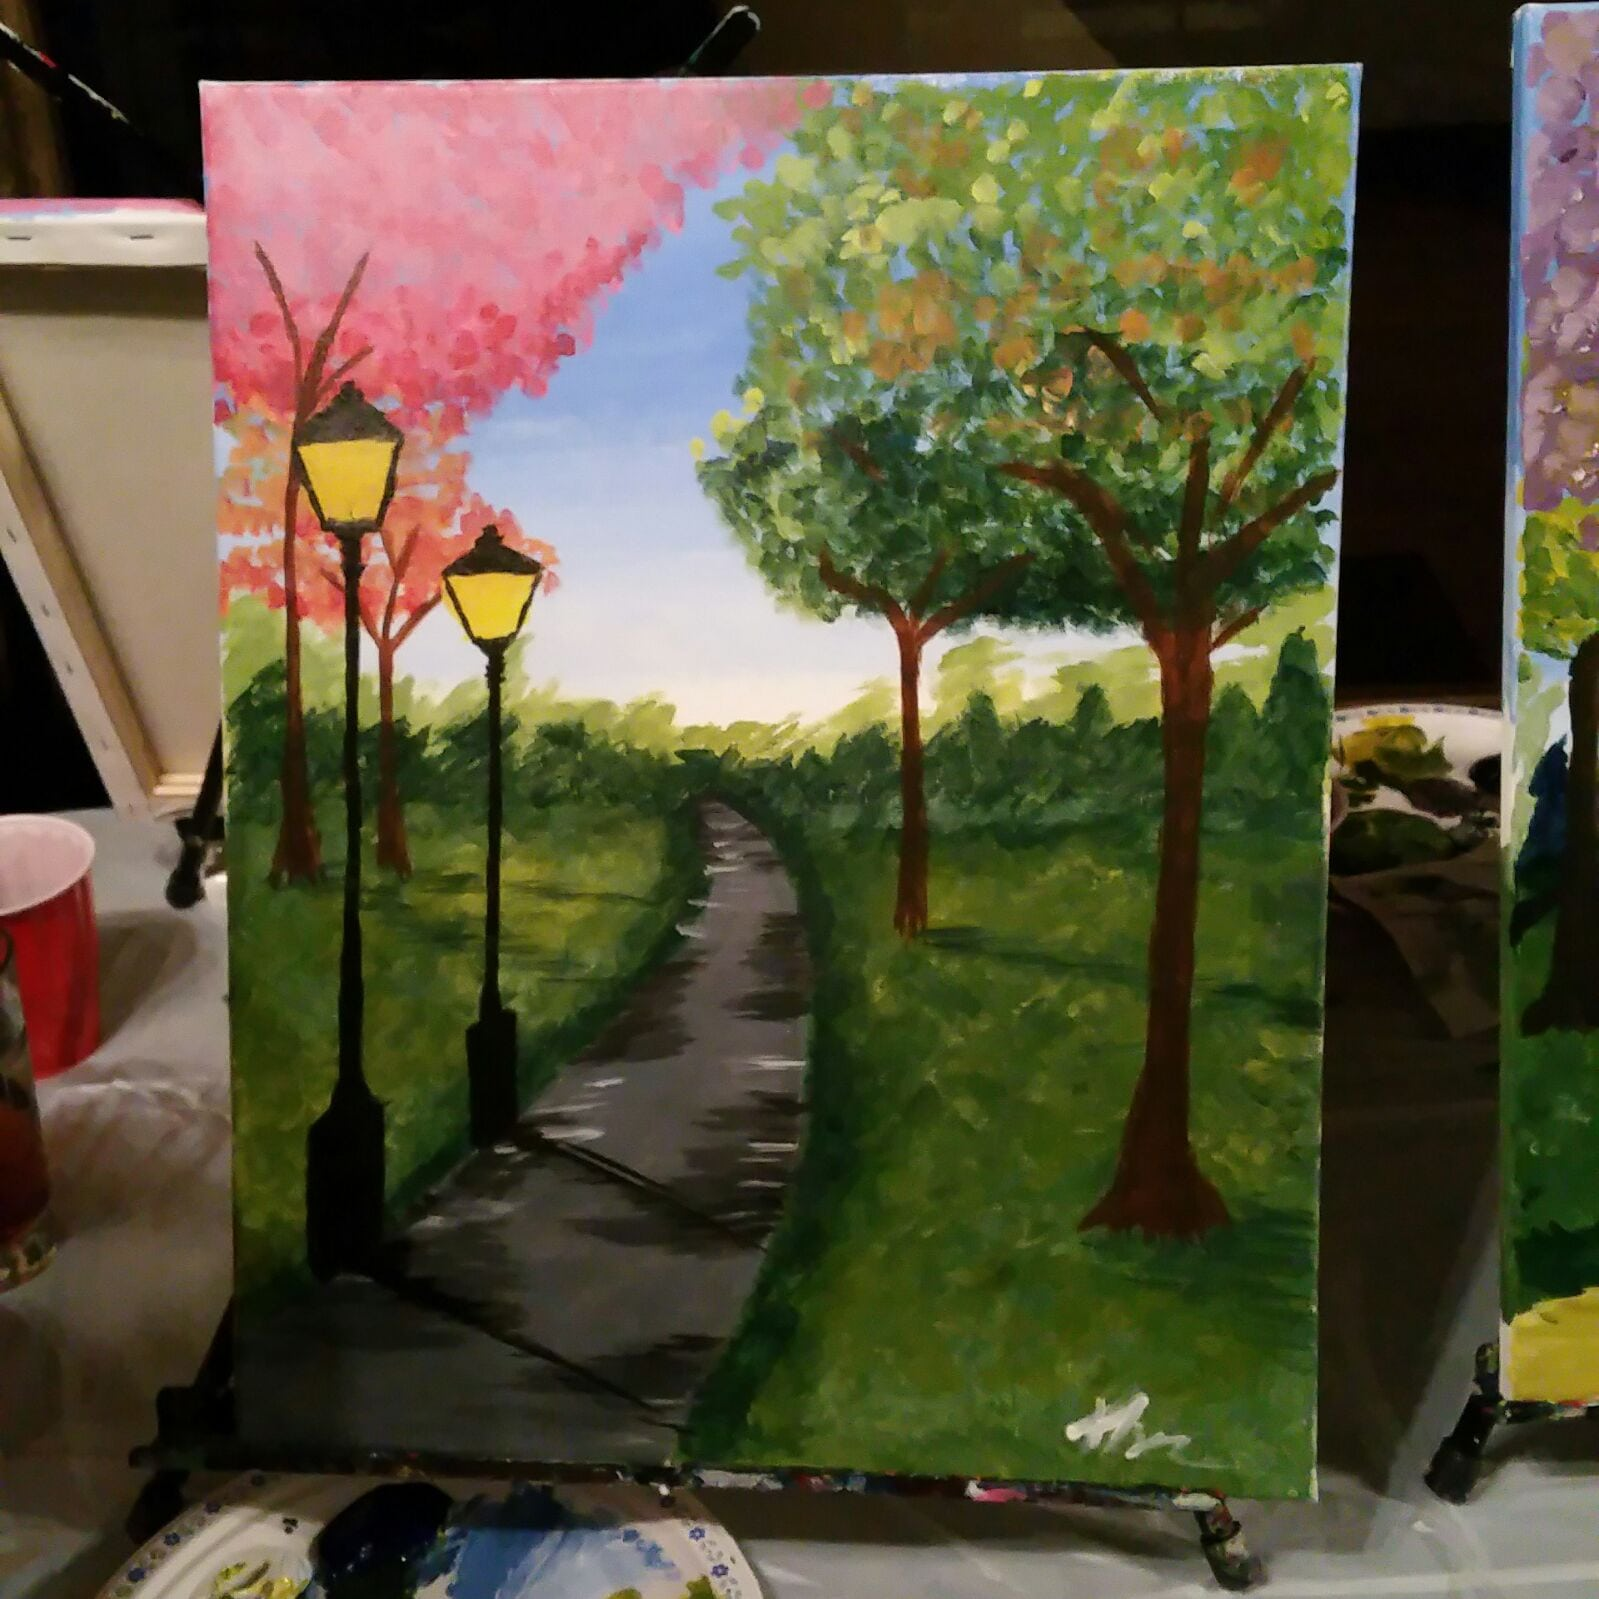 Paint night calgary Valentine's Day V-Day date idea picture painting